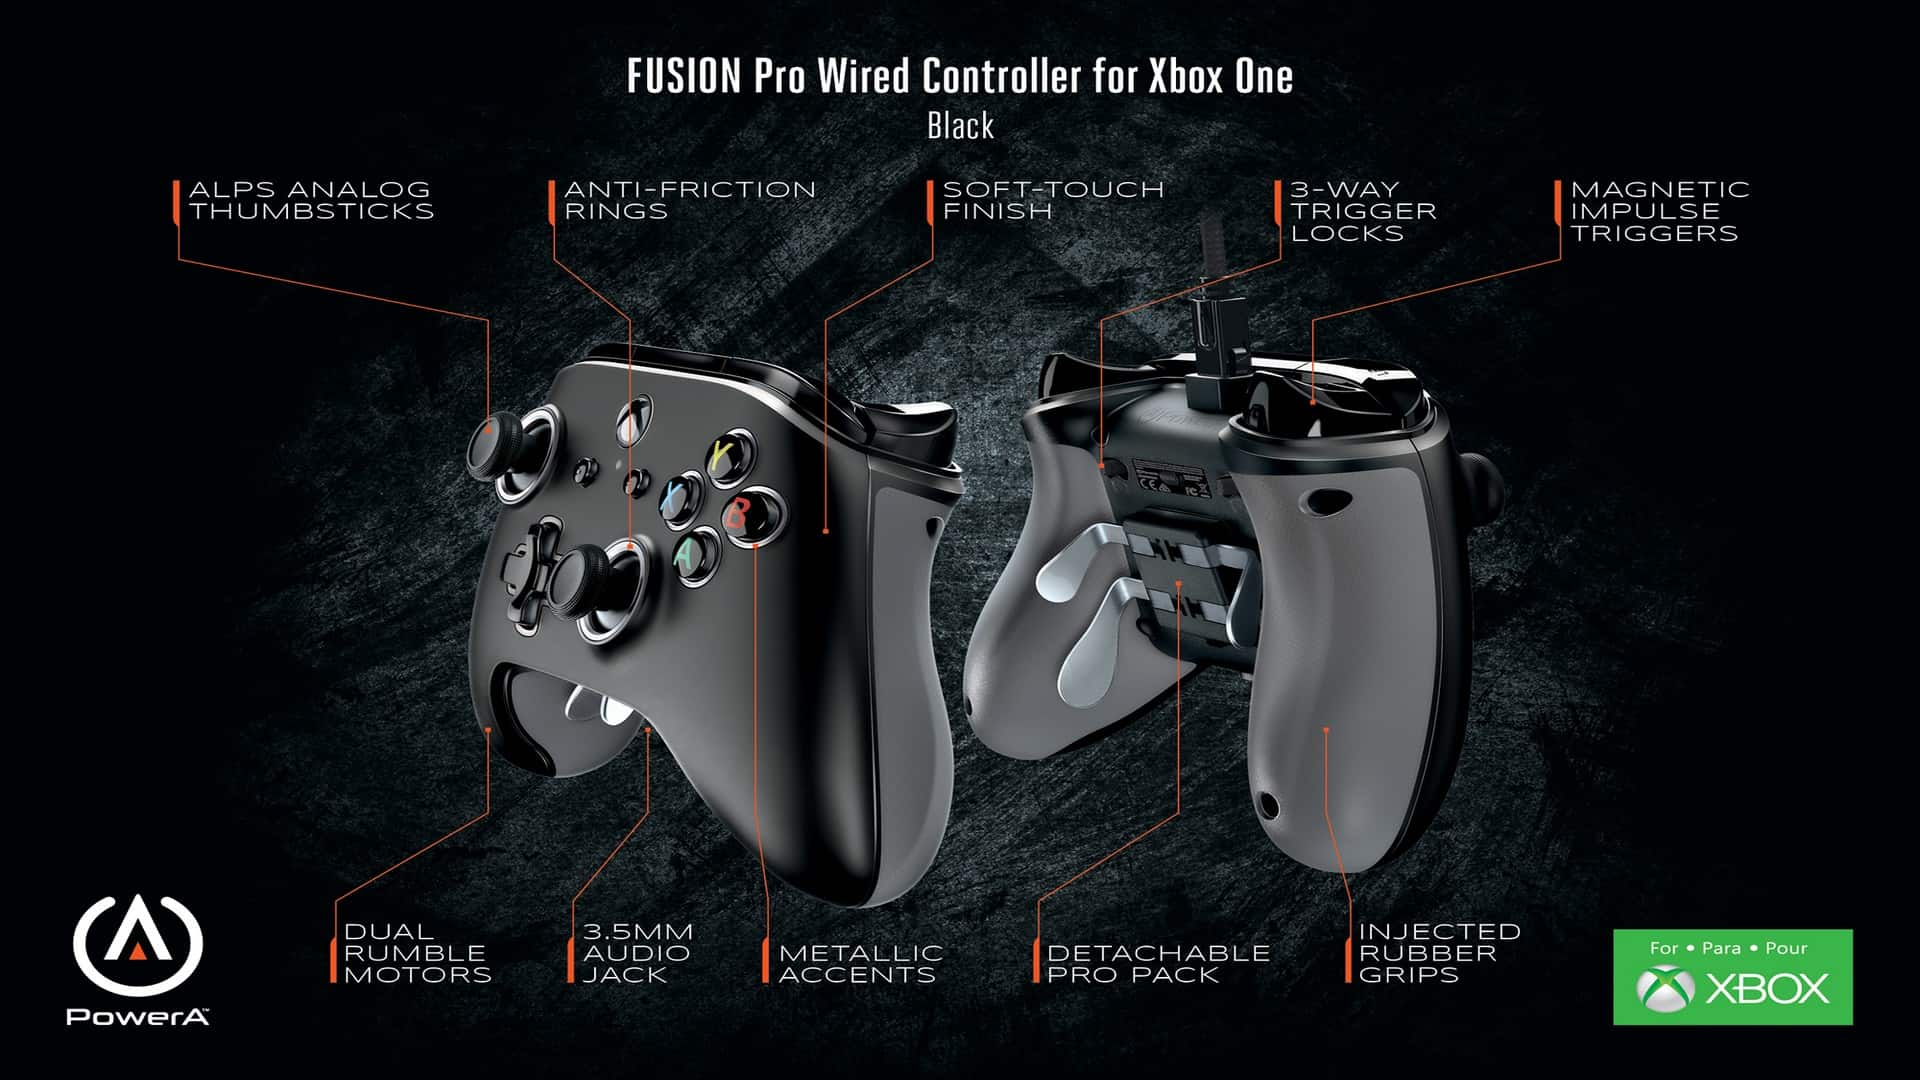 Control Your Destiny With The FUSION Pro Wired Controller For Xbox One